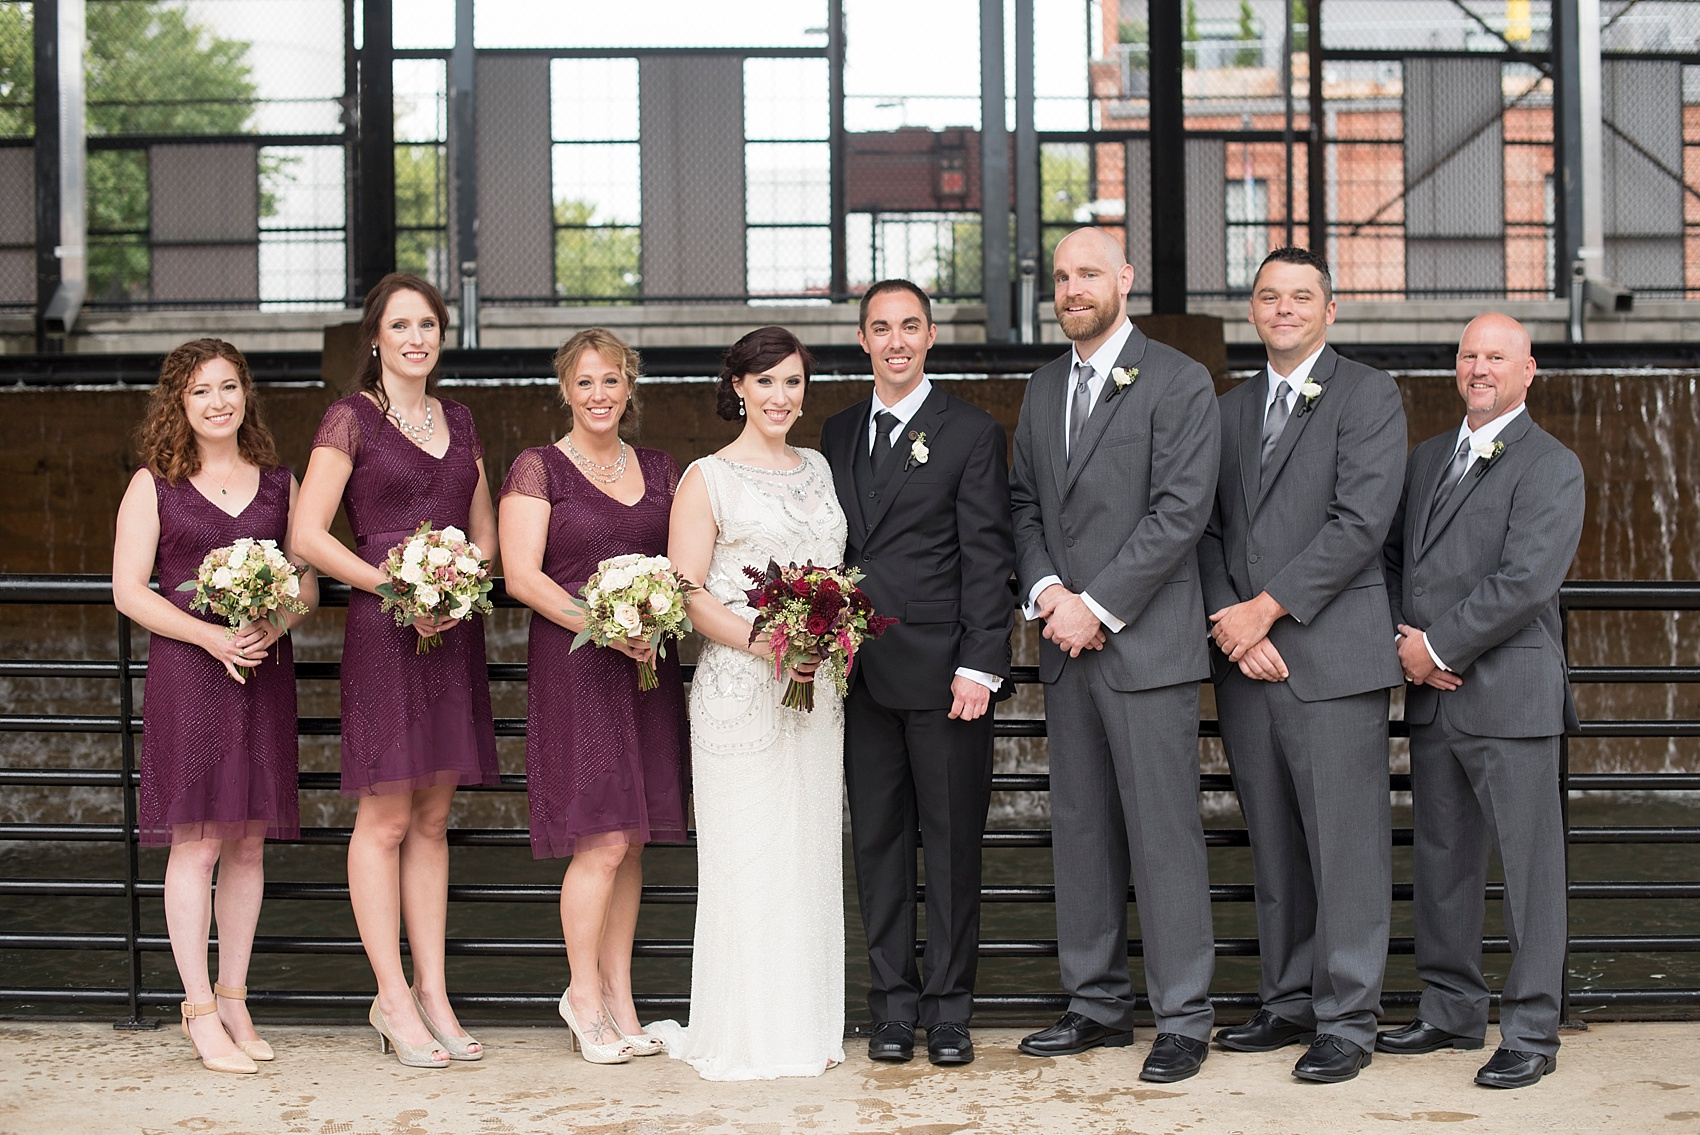 Wedding party photos in the rain! Burgundy bridesmaids with bride in beaded 1920s art deco gown. Bay 7 Durham, NC wedding. Photos by Mikkel Paige Photography.